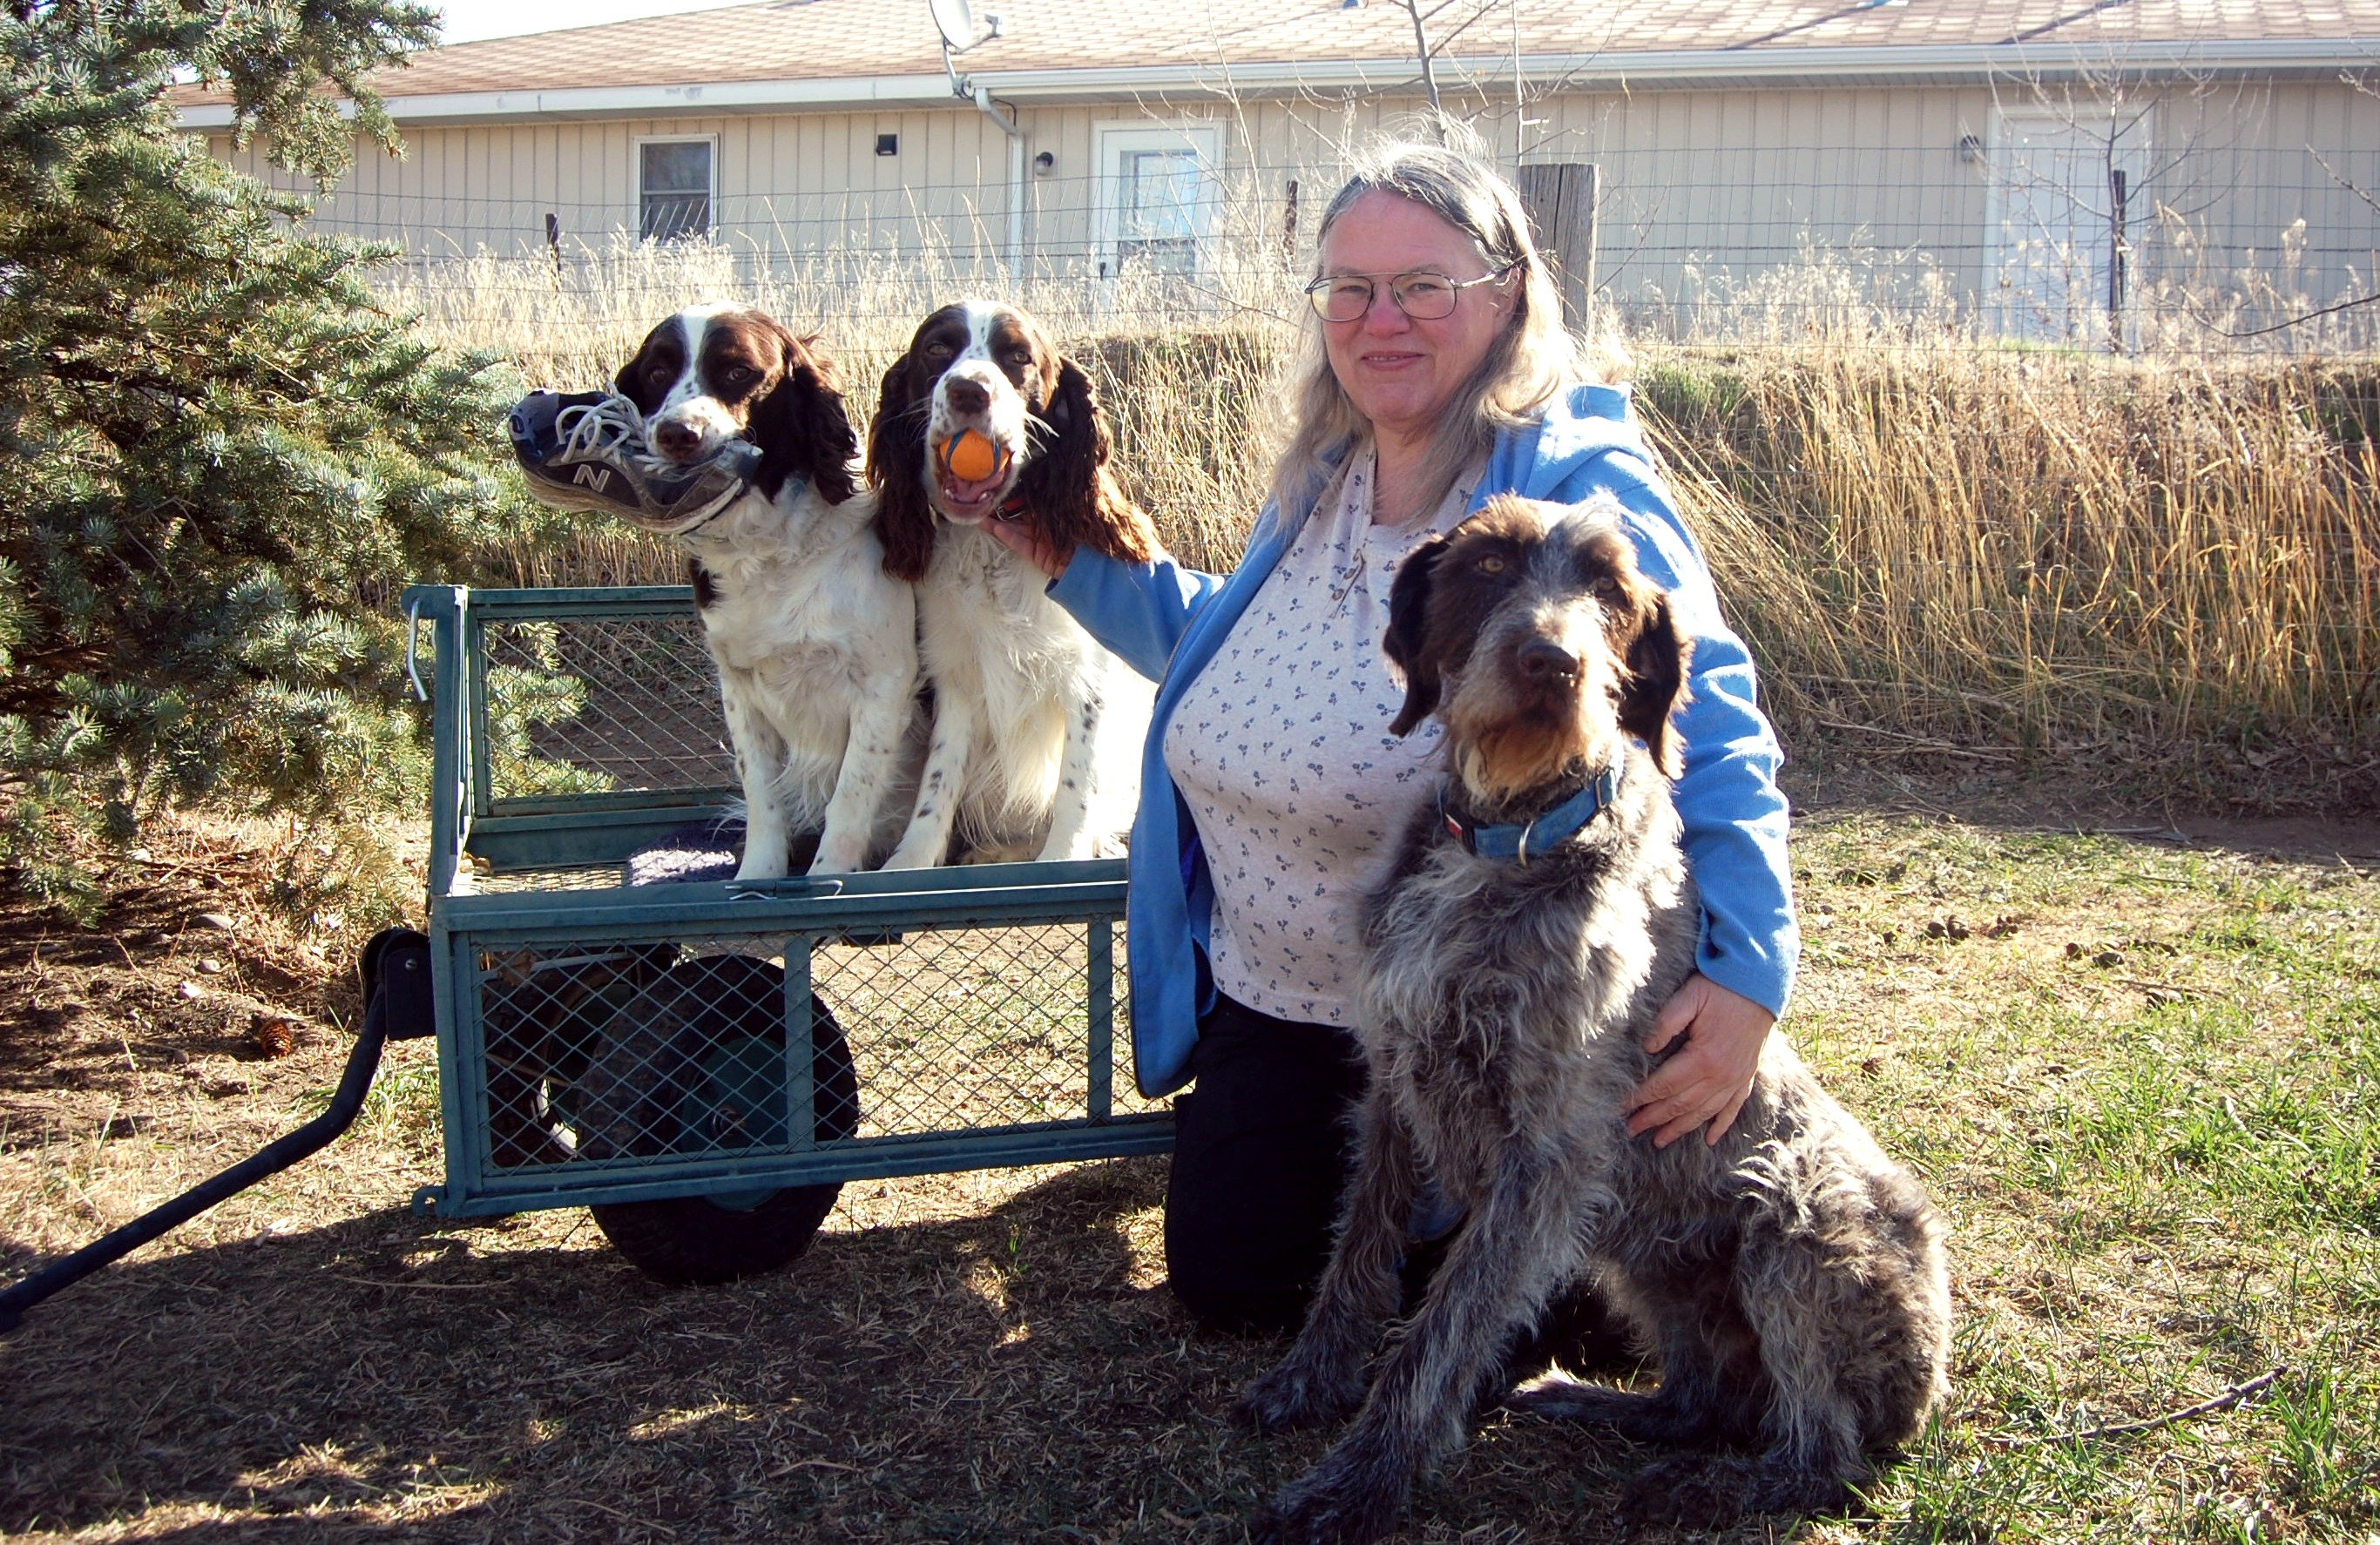 Team member Deana with her three dogs